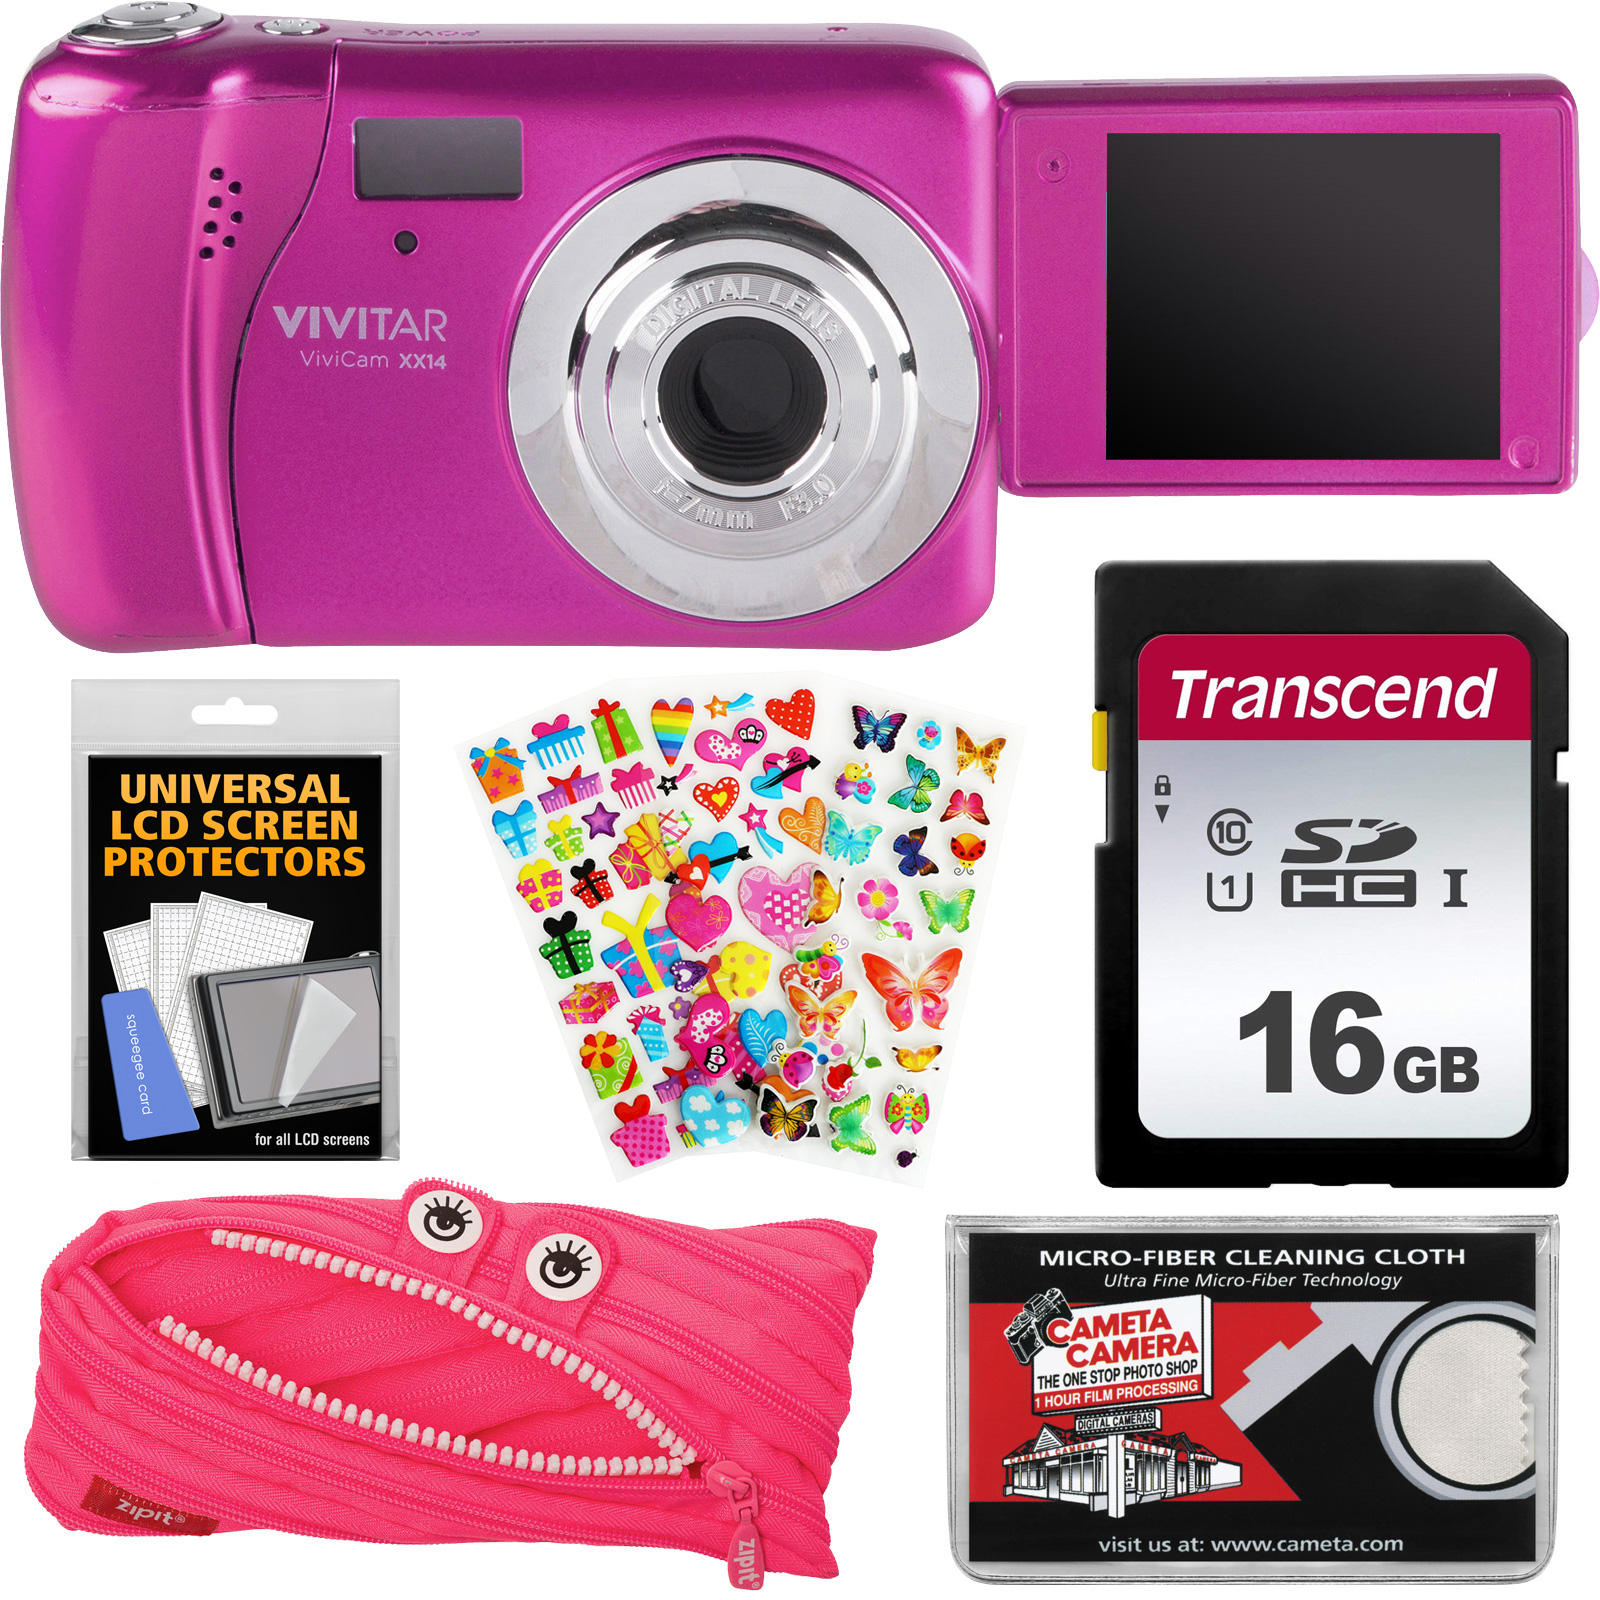 Vivitar ViviCam VXX14 Selfie Digital Camera (Red) with 16GB Card + Zipit Case & Pouch + Puffy Stickers + Cloth + Kit